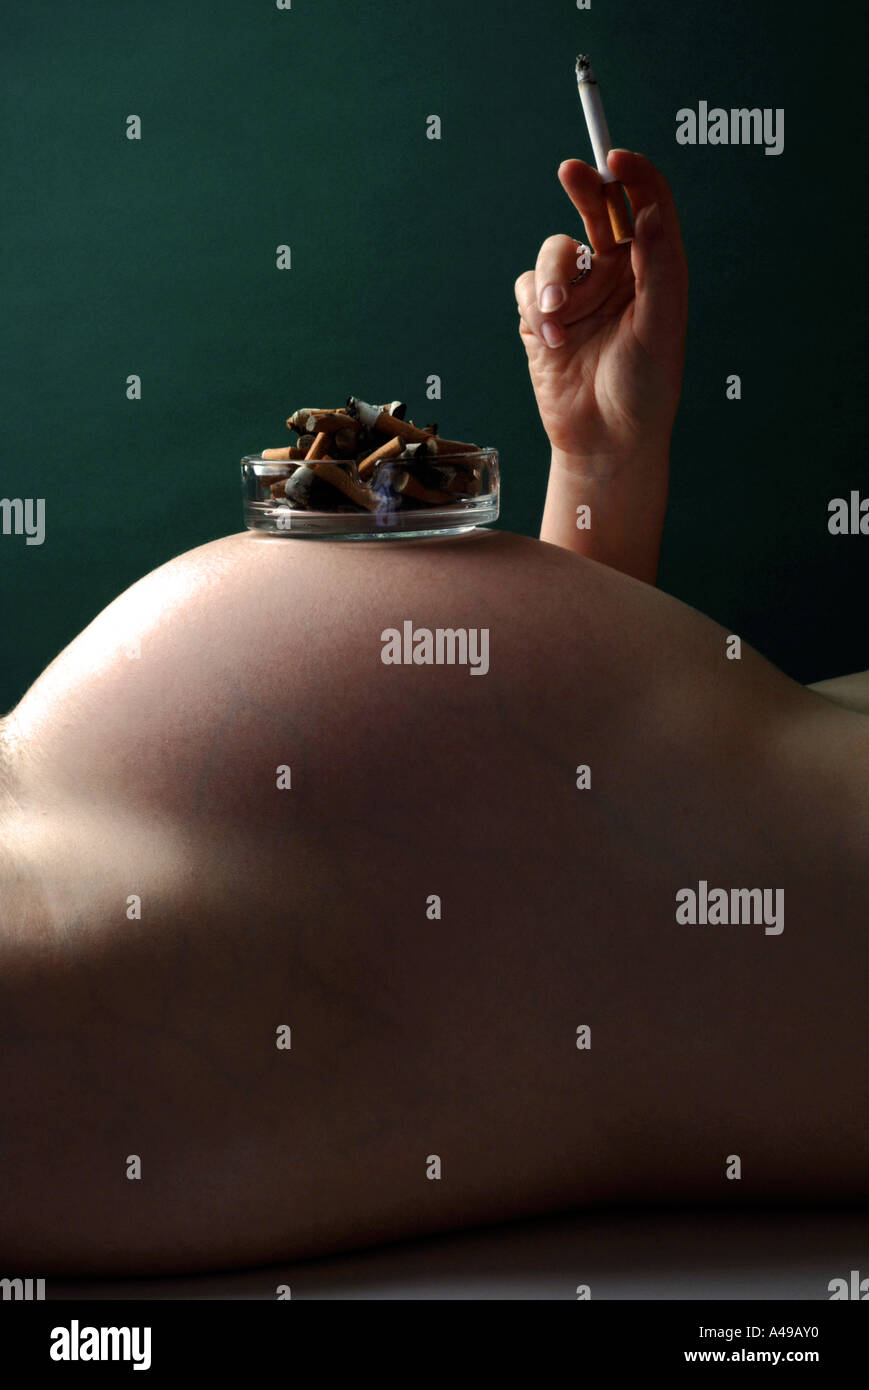 Drug Abuse And Pregnancy Stock Photos & Drug Abuse And Pregnancy